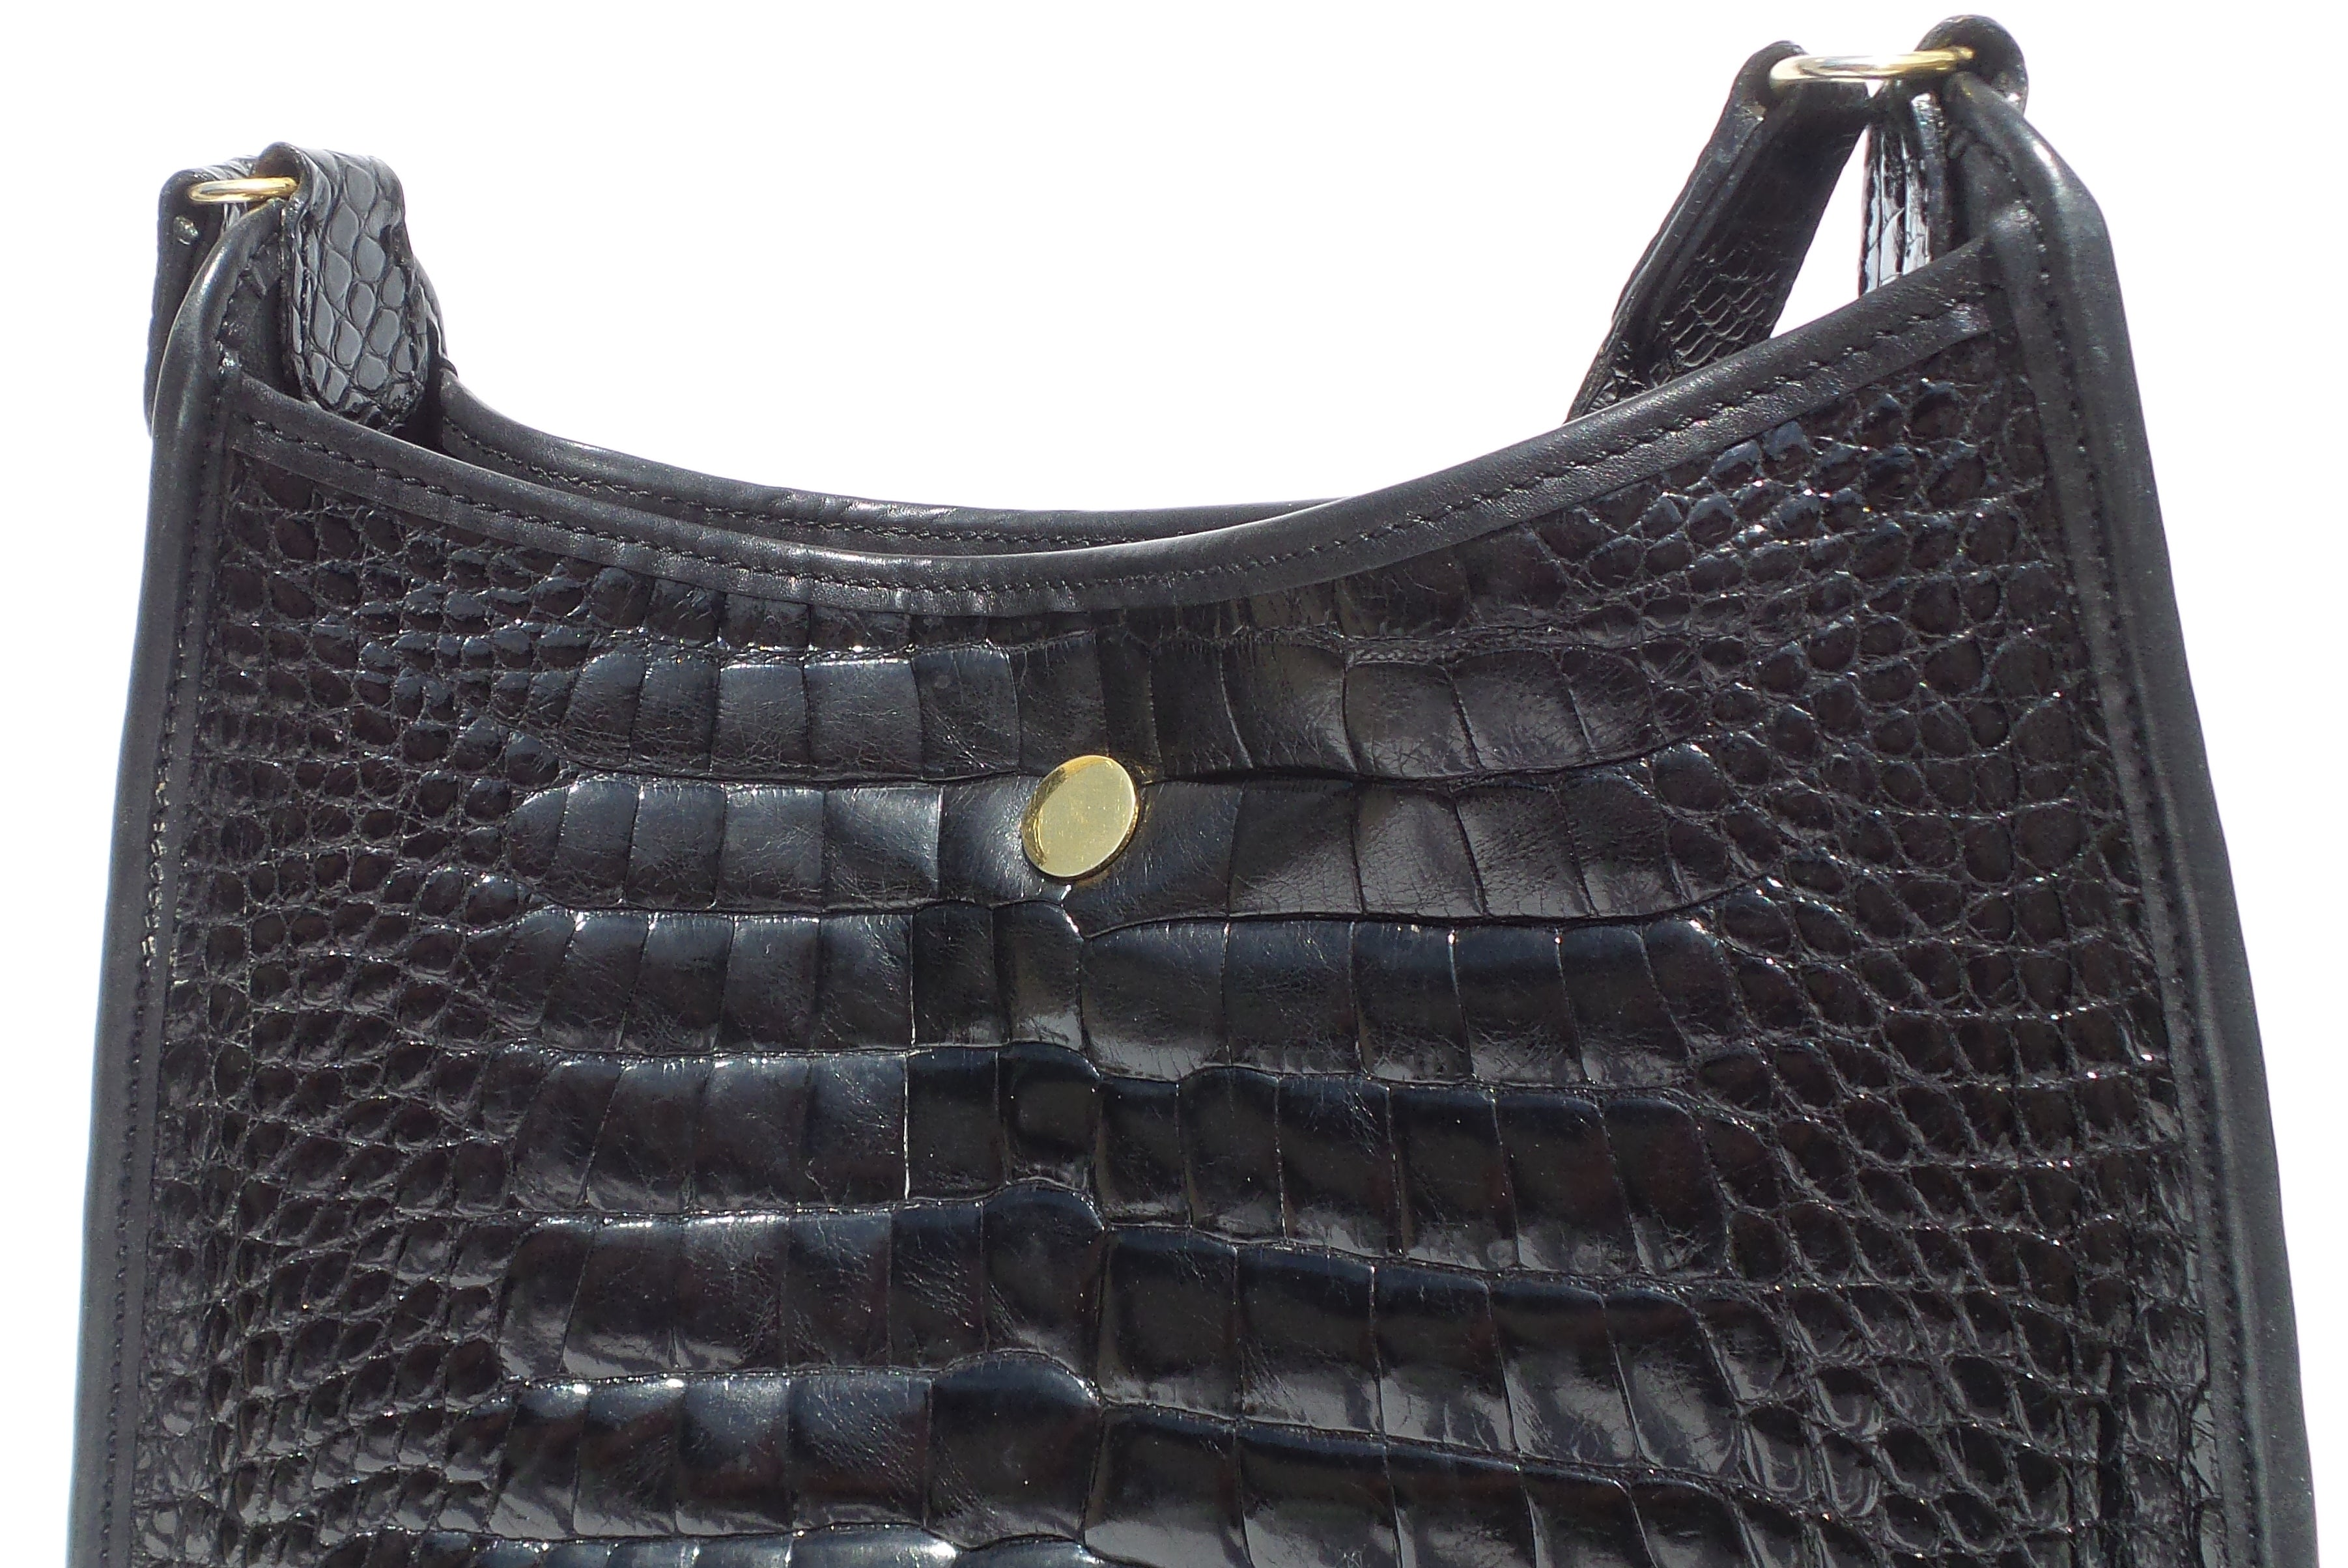 LORRAINE Italy Black Glossy Crocodile Alligator Leather Gold HW Shoulder Bag VTG